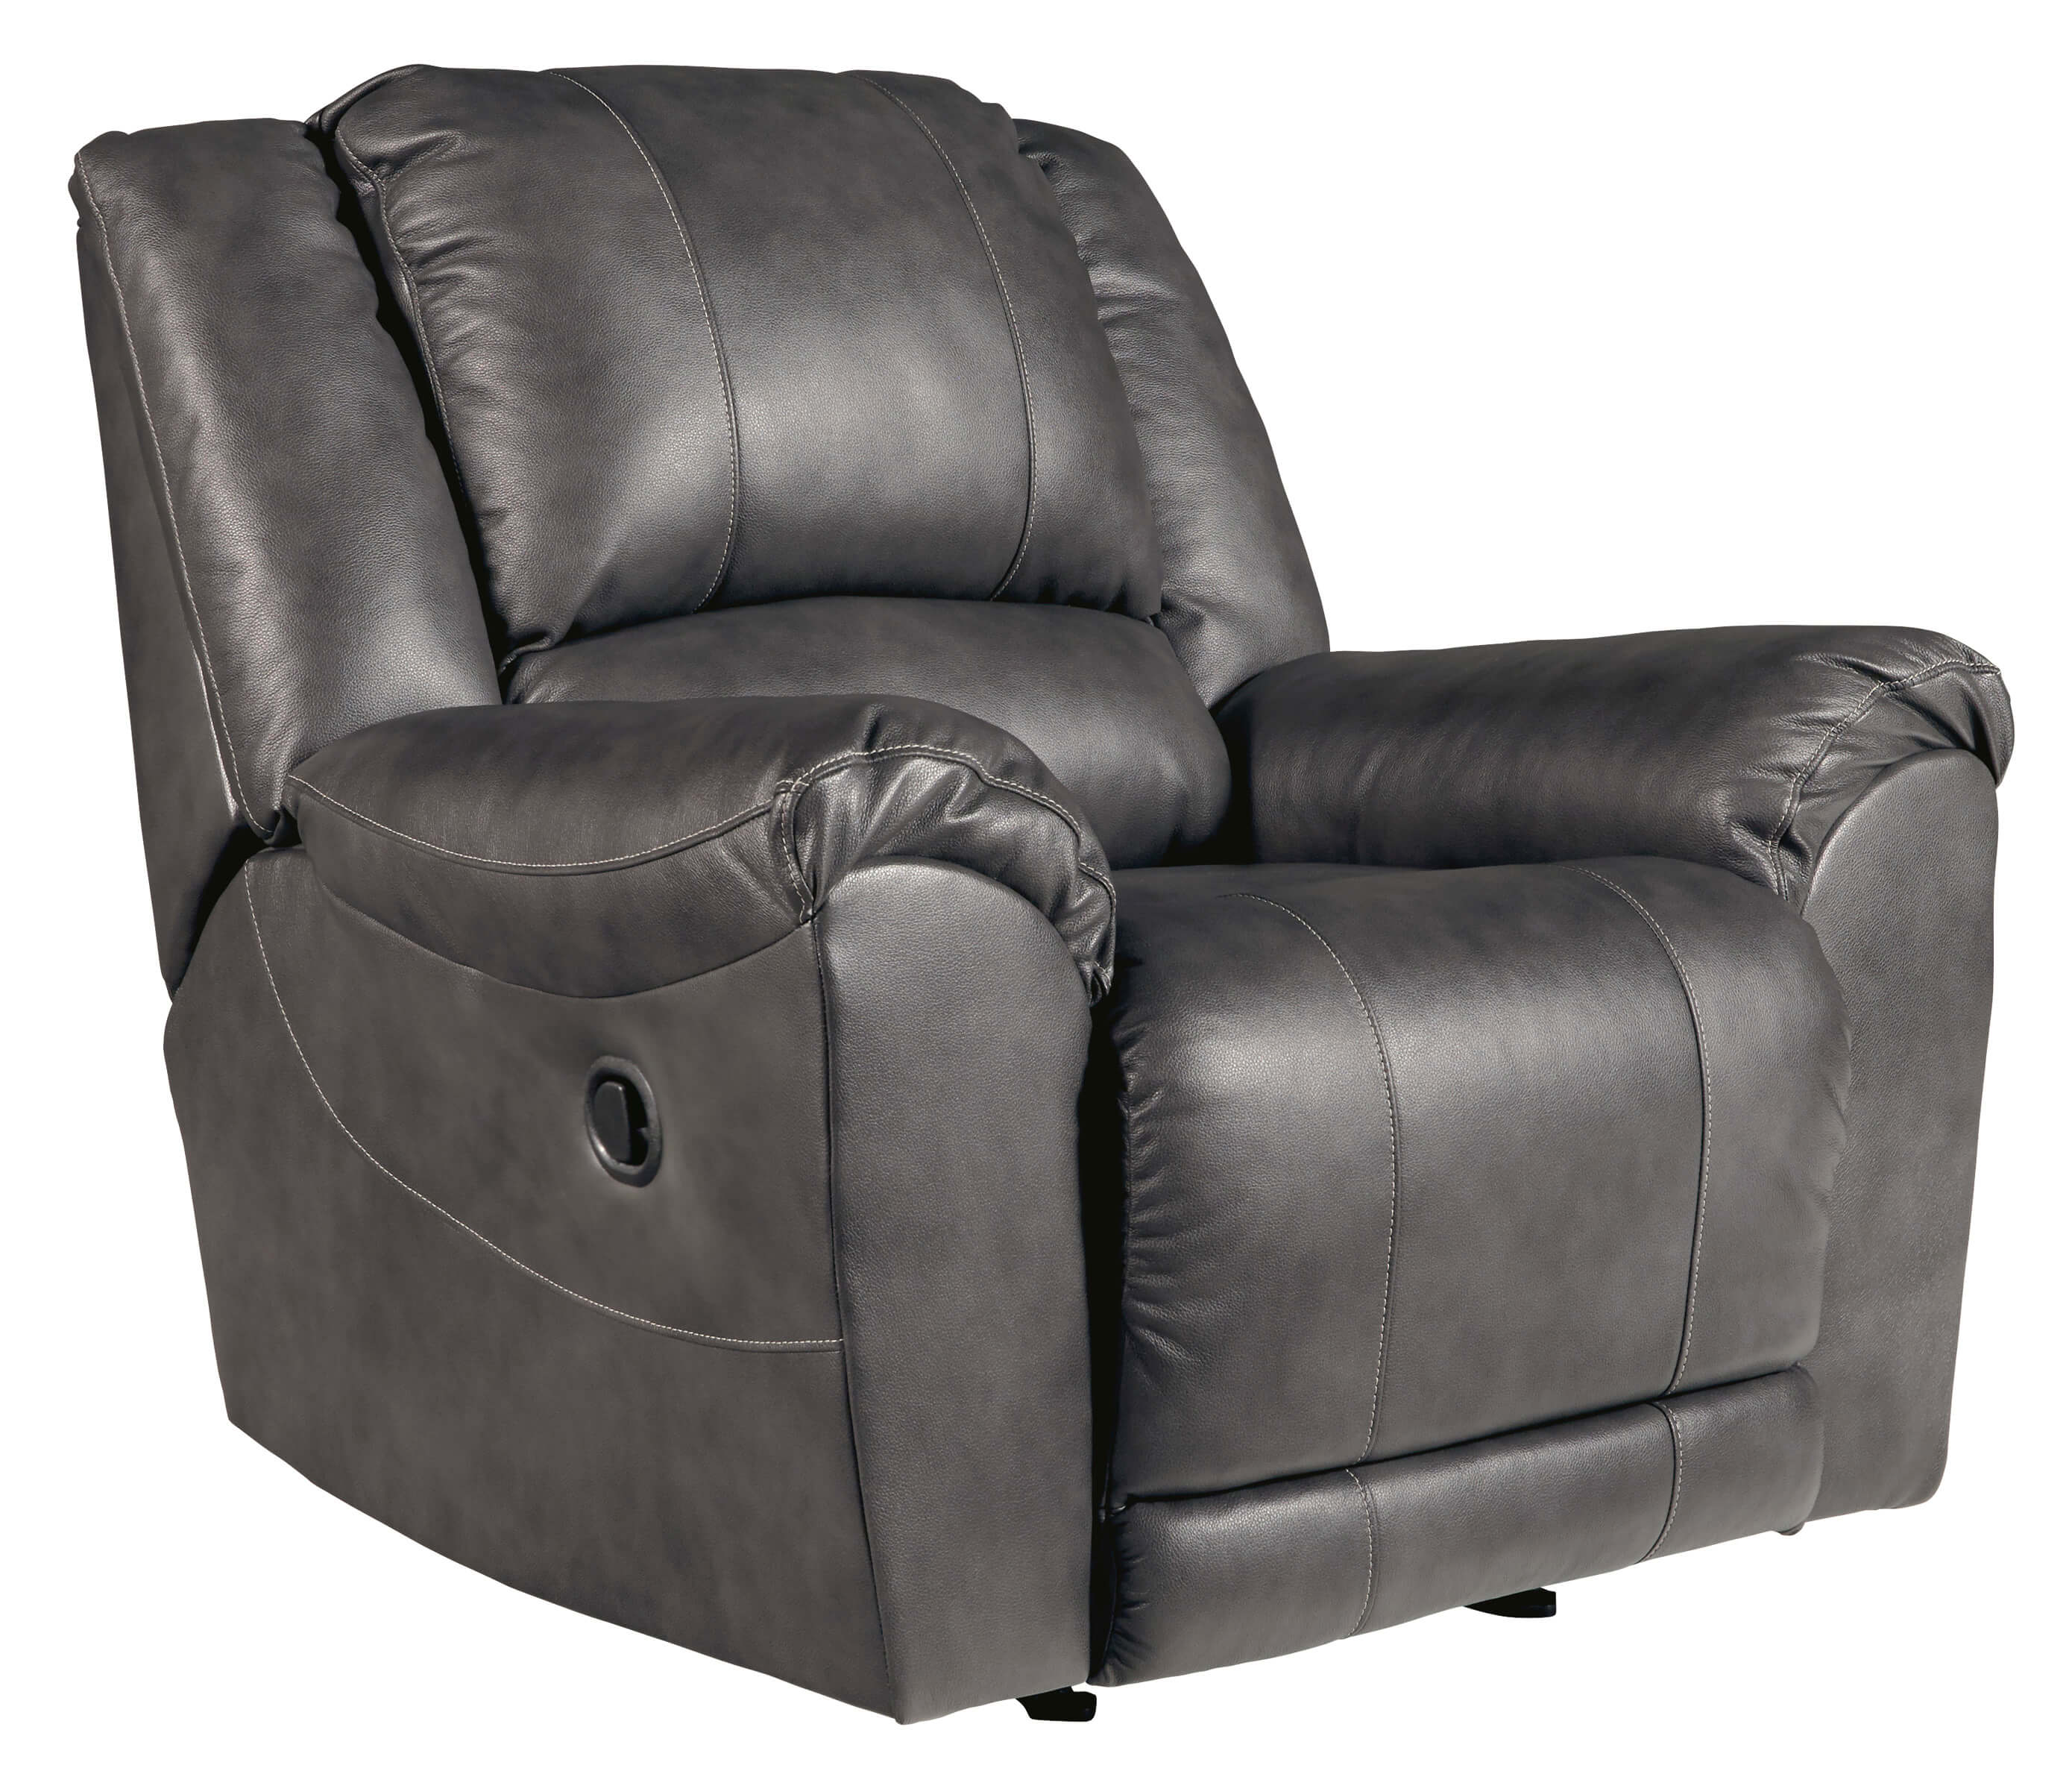 Persiphone Charcoal Leather Reclining Sofa and Loveseat